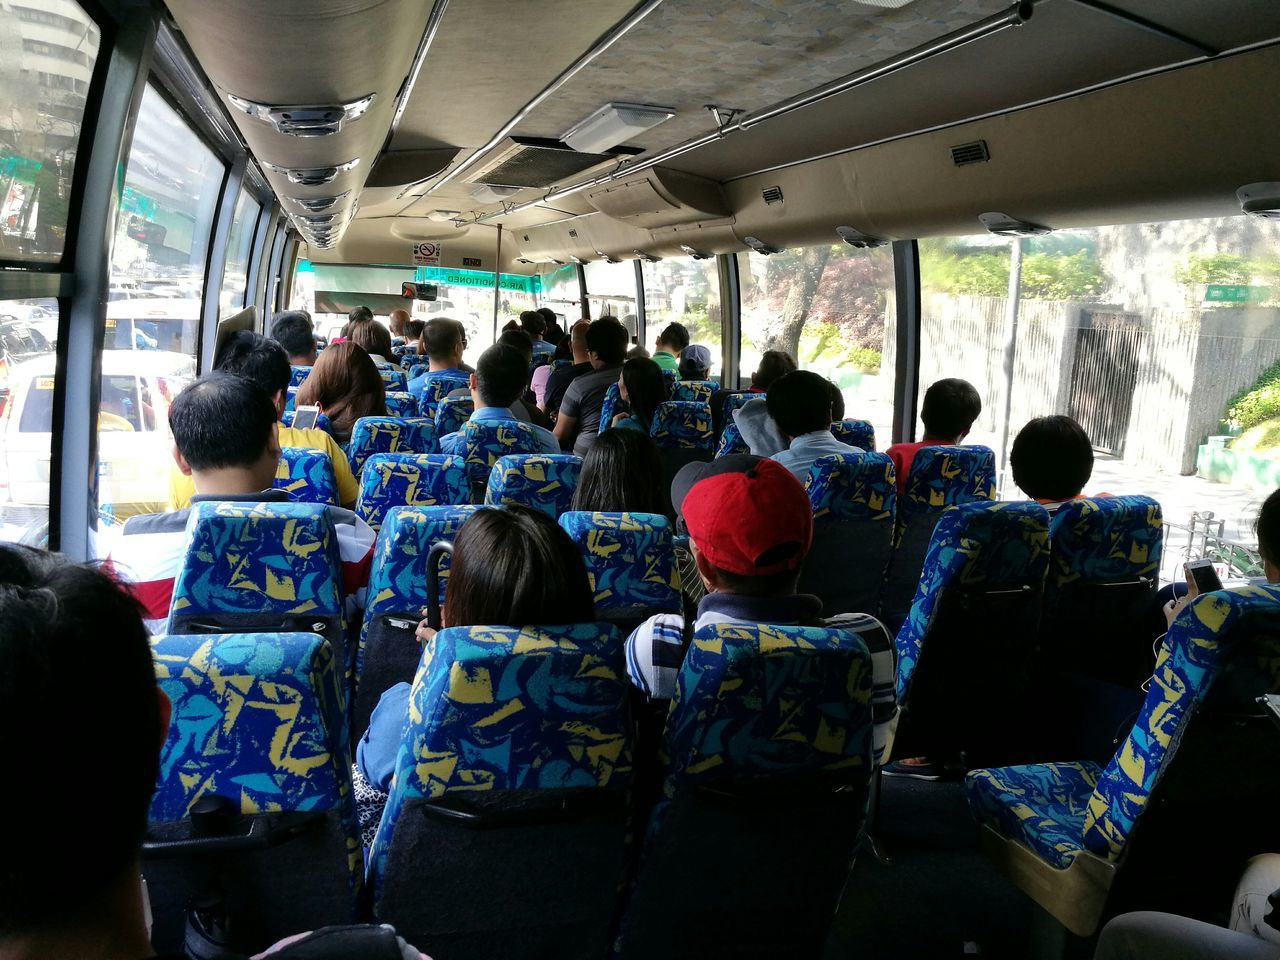 Normal bus mode.. Transportation Mode Of Transport Vehicle Interior Large Group Of People Travel Passenger Land Vehicle Air Vehicle Public Transportation Crowd Adults Only Vehicle Seat Airplane Seat Journey Adult Airplane People Day